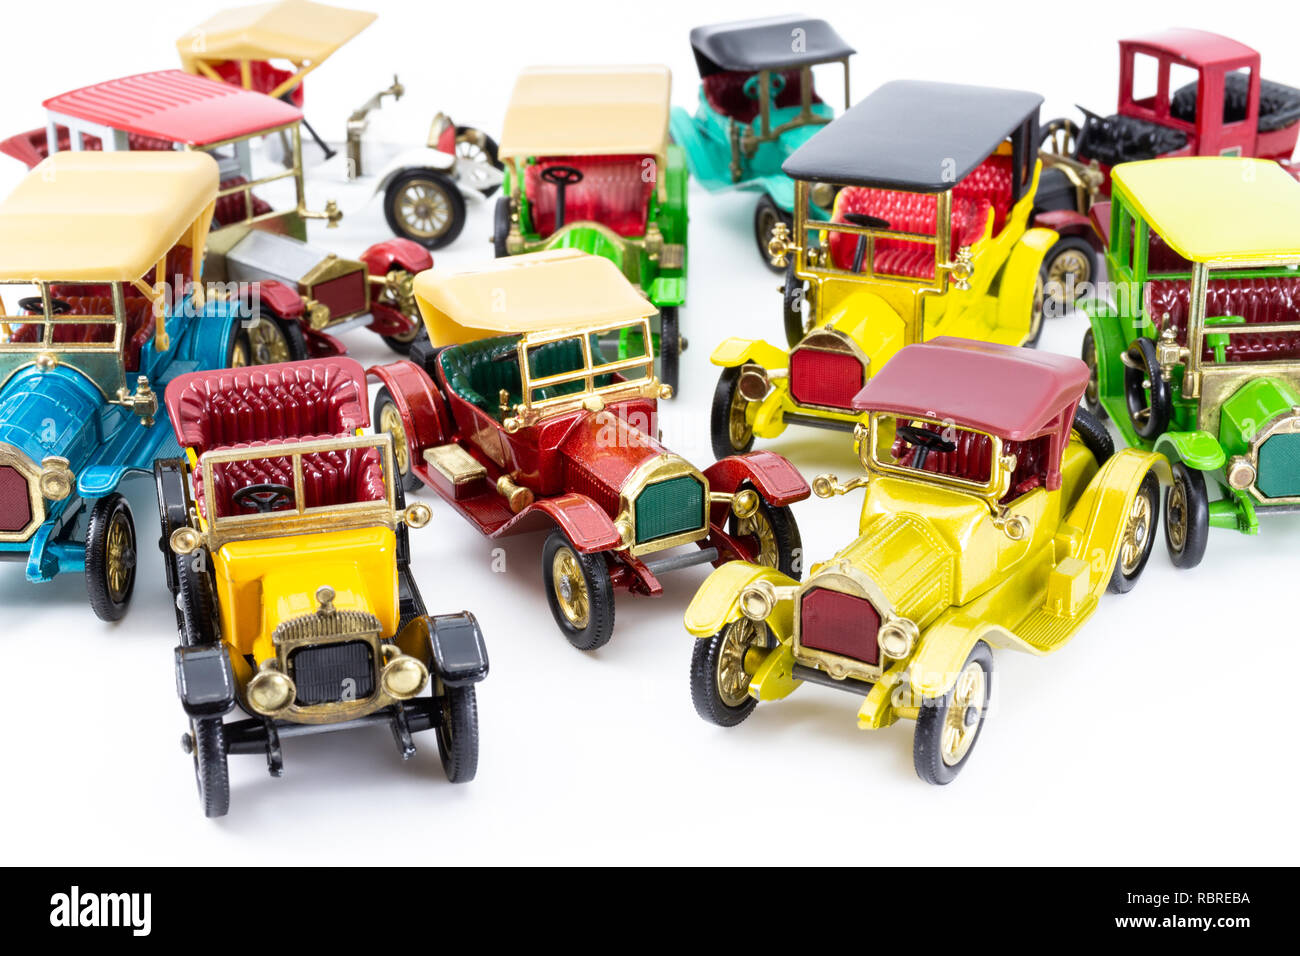 Collection of Matchbox Models of Yesteryear cars - Stock Image